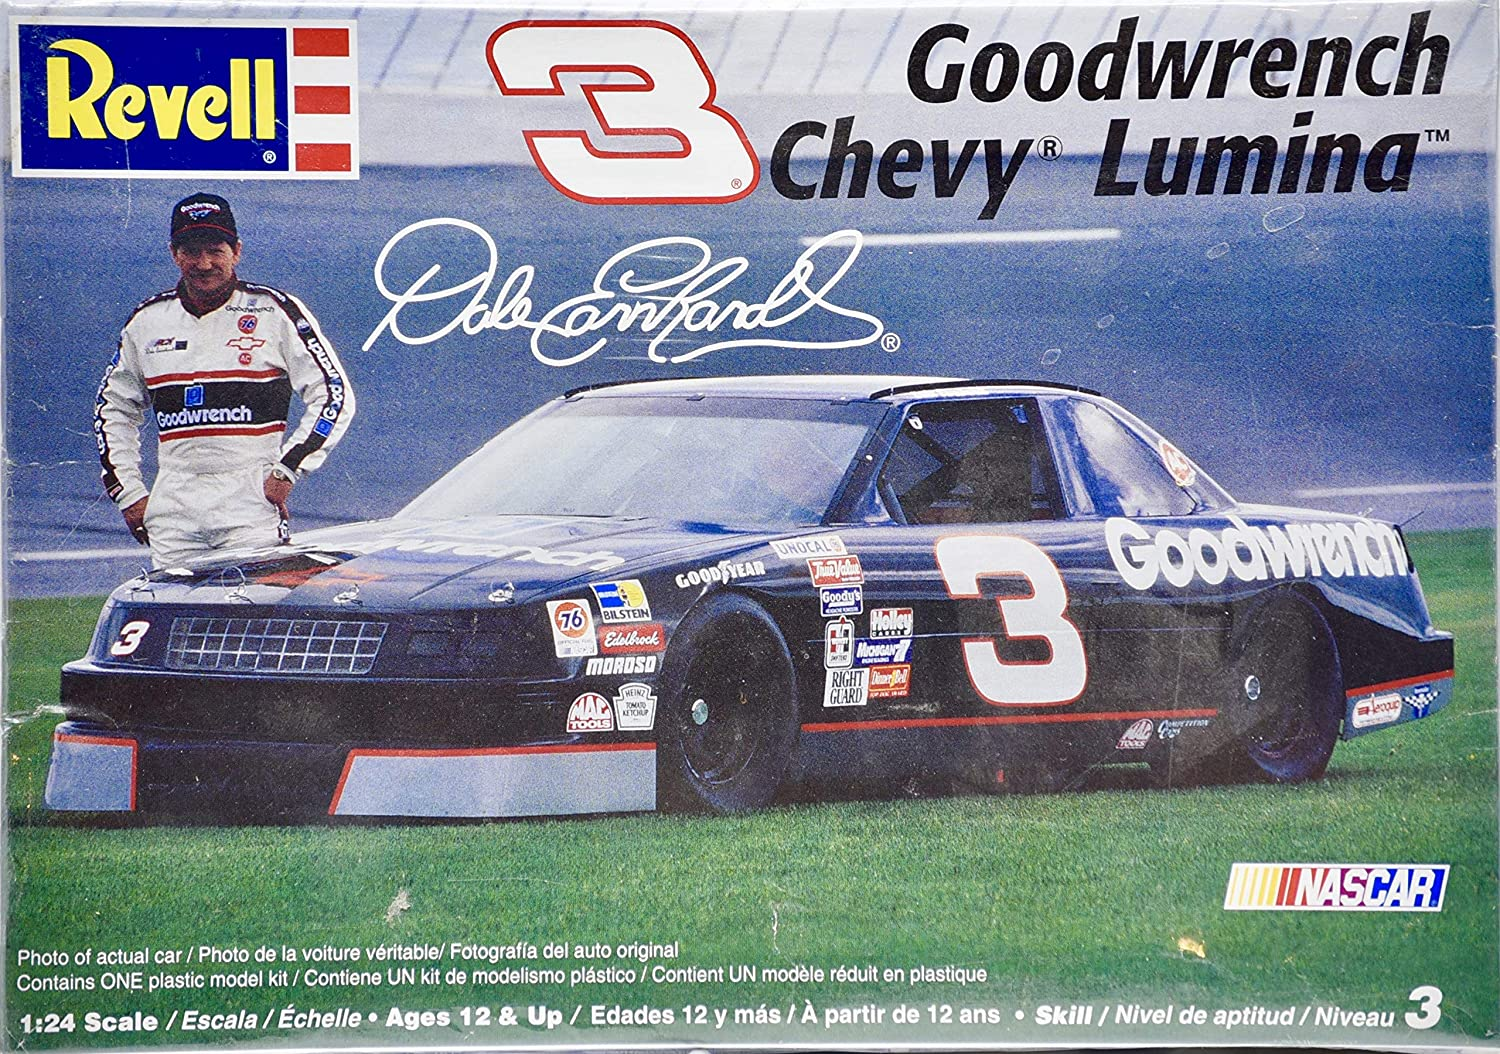 Revell Goodwrench Chevy Lumina Dale Earnhardt 3 124 Scale By